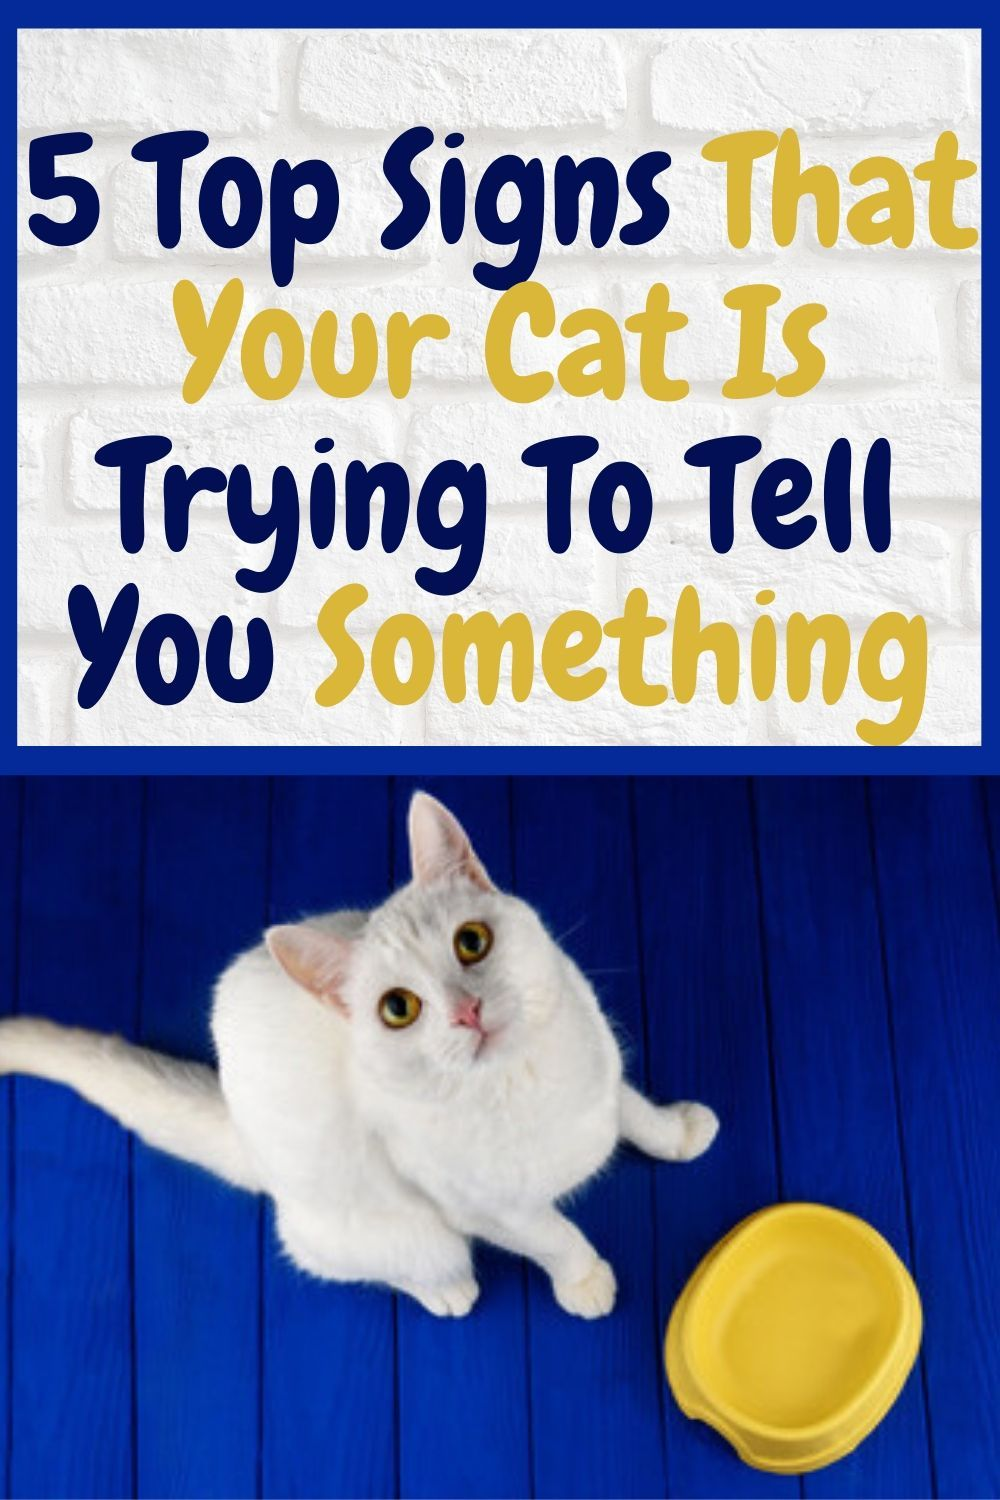 5 Top Signs That Your Cat Is Trying To Tell You Something Welfar4us In 2020 Cute Cats And Kittens Cat Language Cat Facts